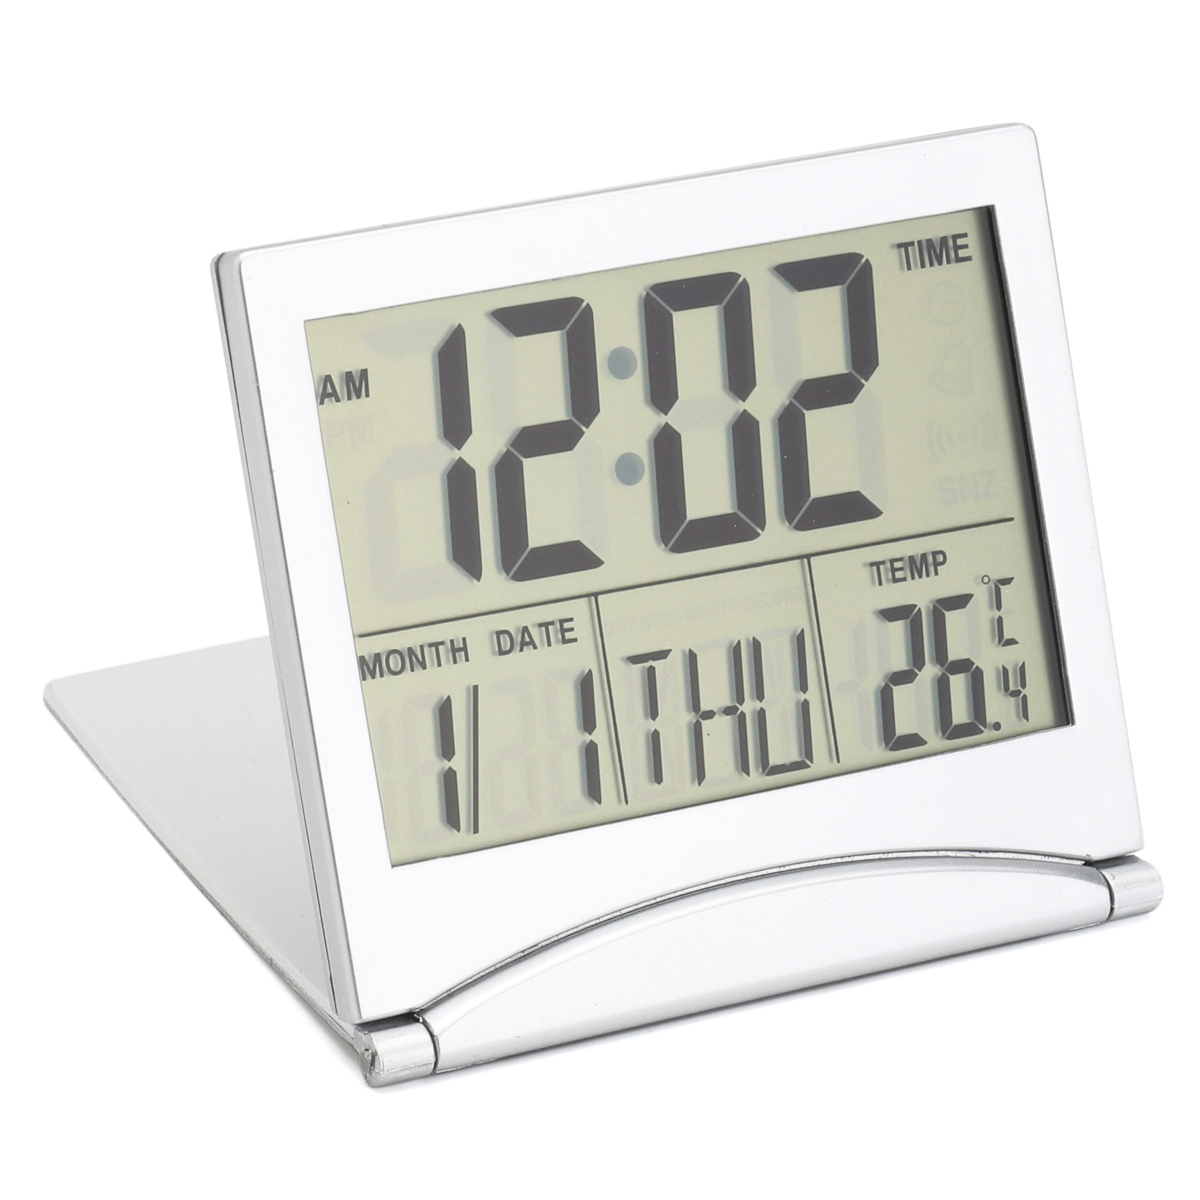 Digital LCD Screen Travel Alarm Clocks Table Desk Thermometer Timer Calendar